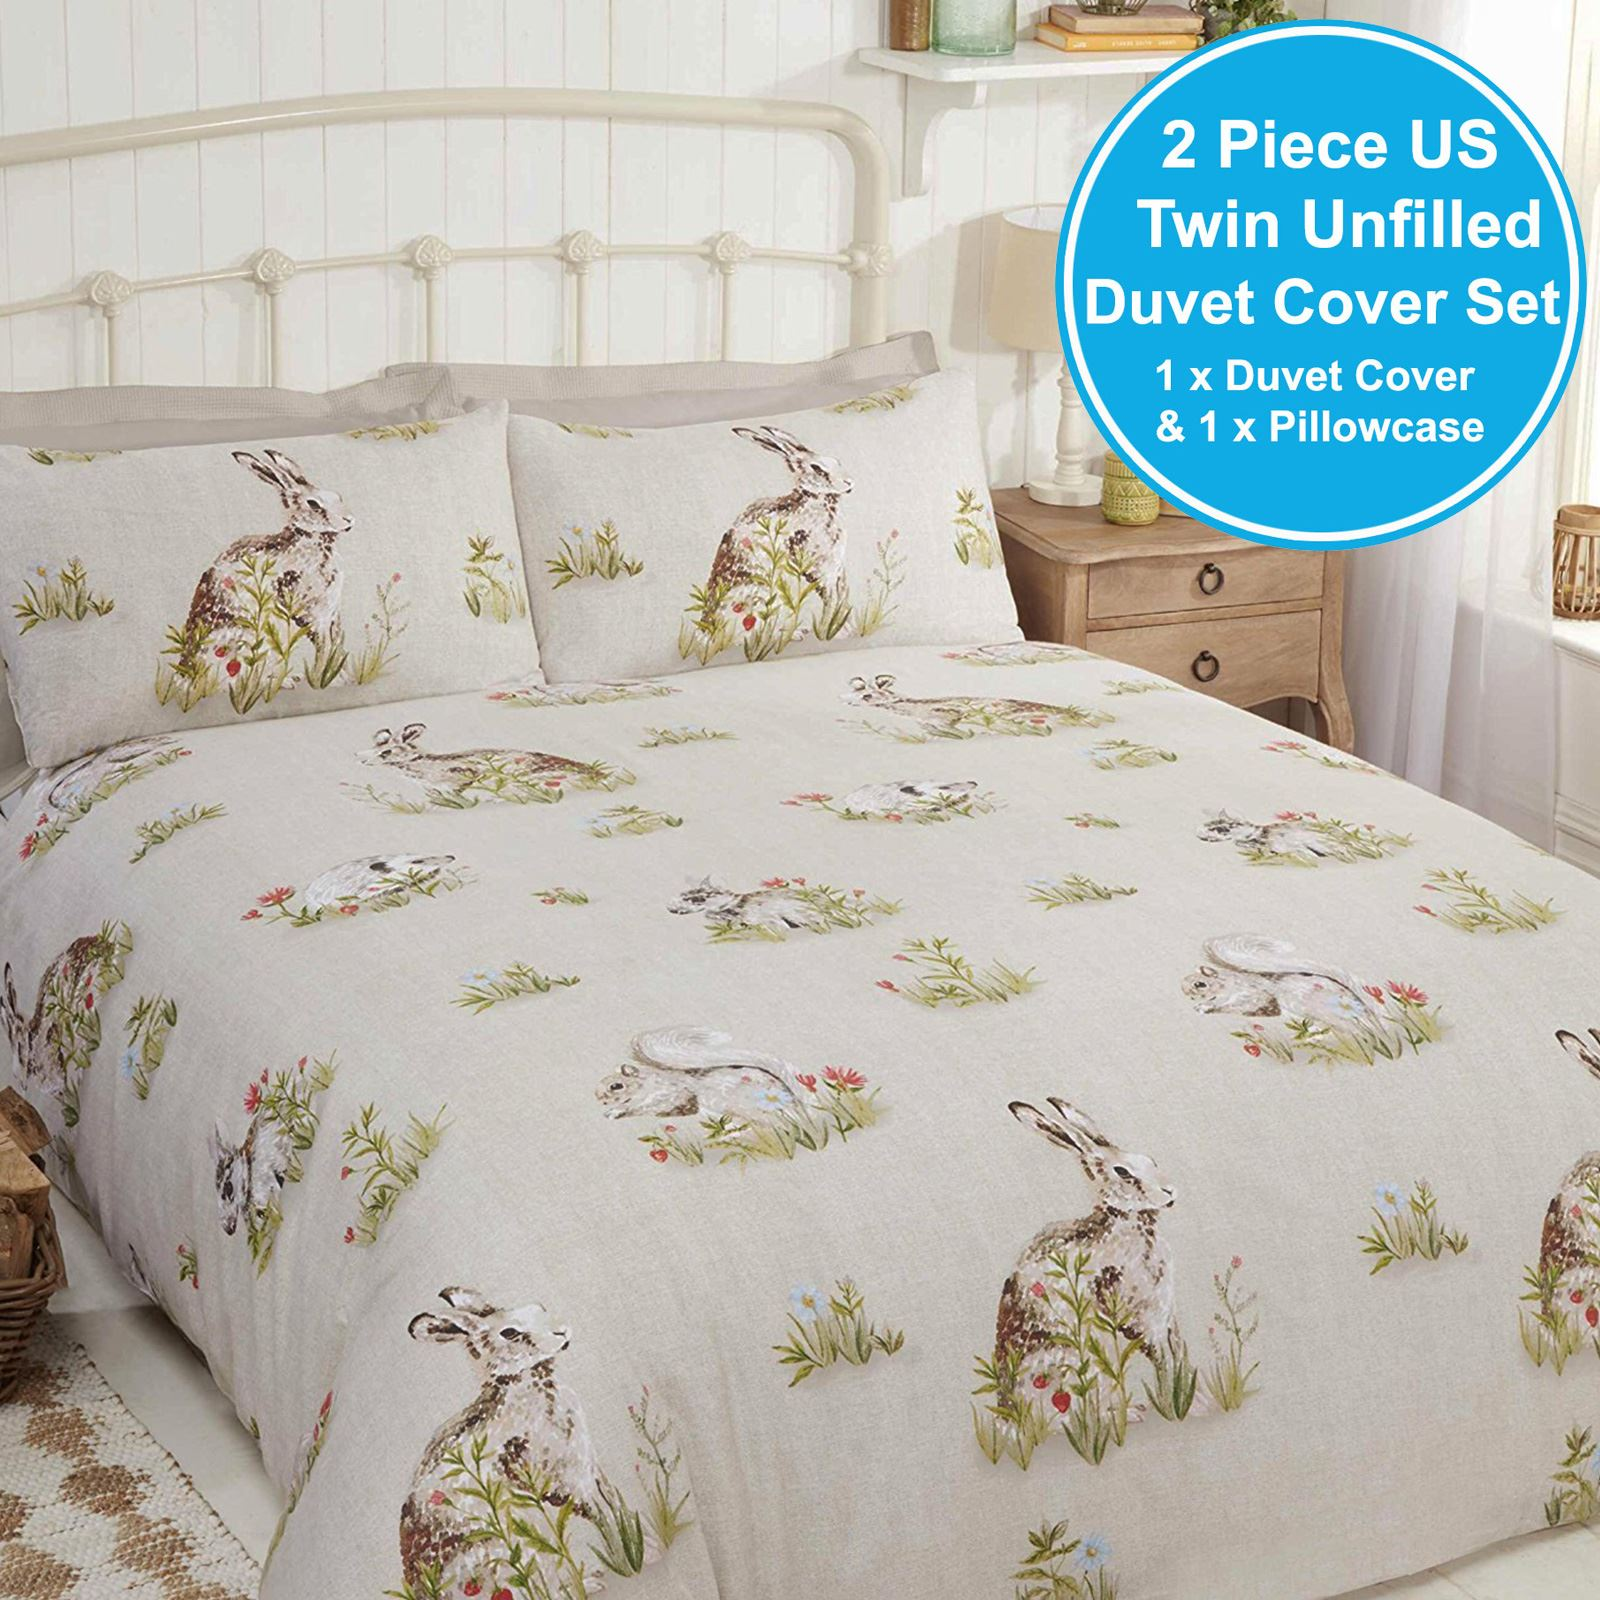 COUNTRY BUMPKIN SINGLE DUVET COVER SET HARES RABBITS SQUIRRELS NATURAL